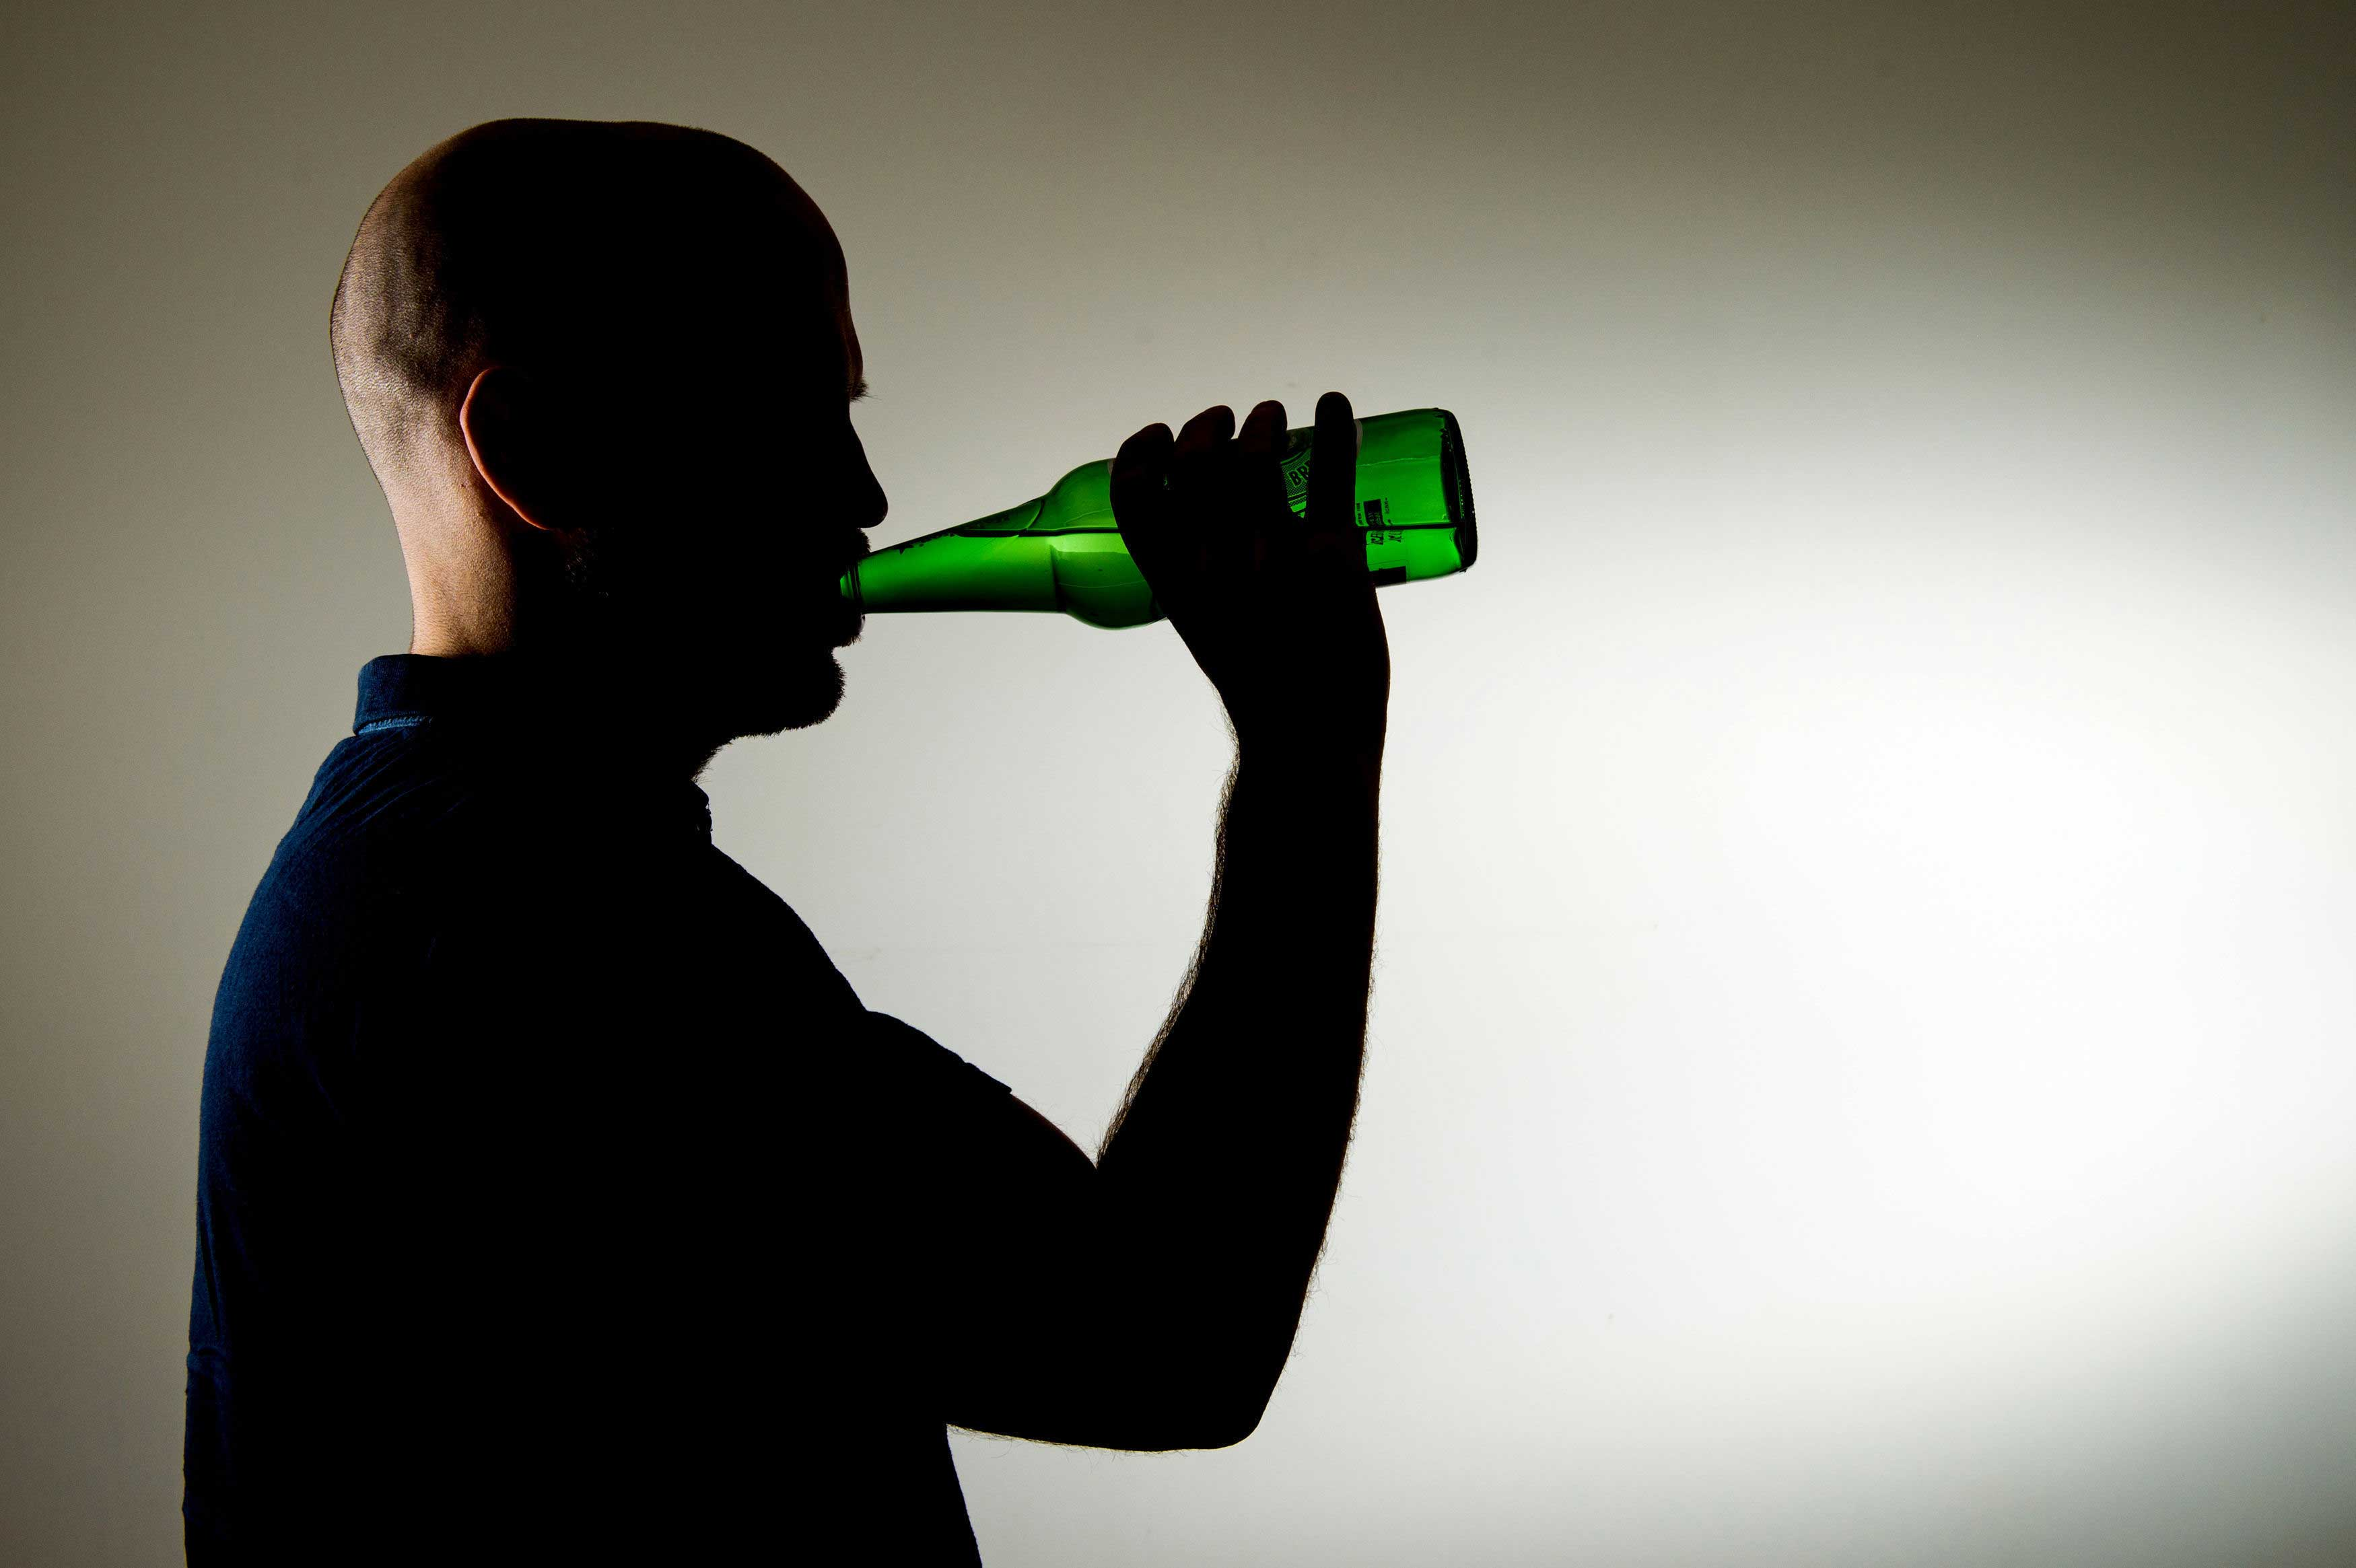 Regular excess drinking leads to a shorter life, study says